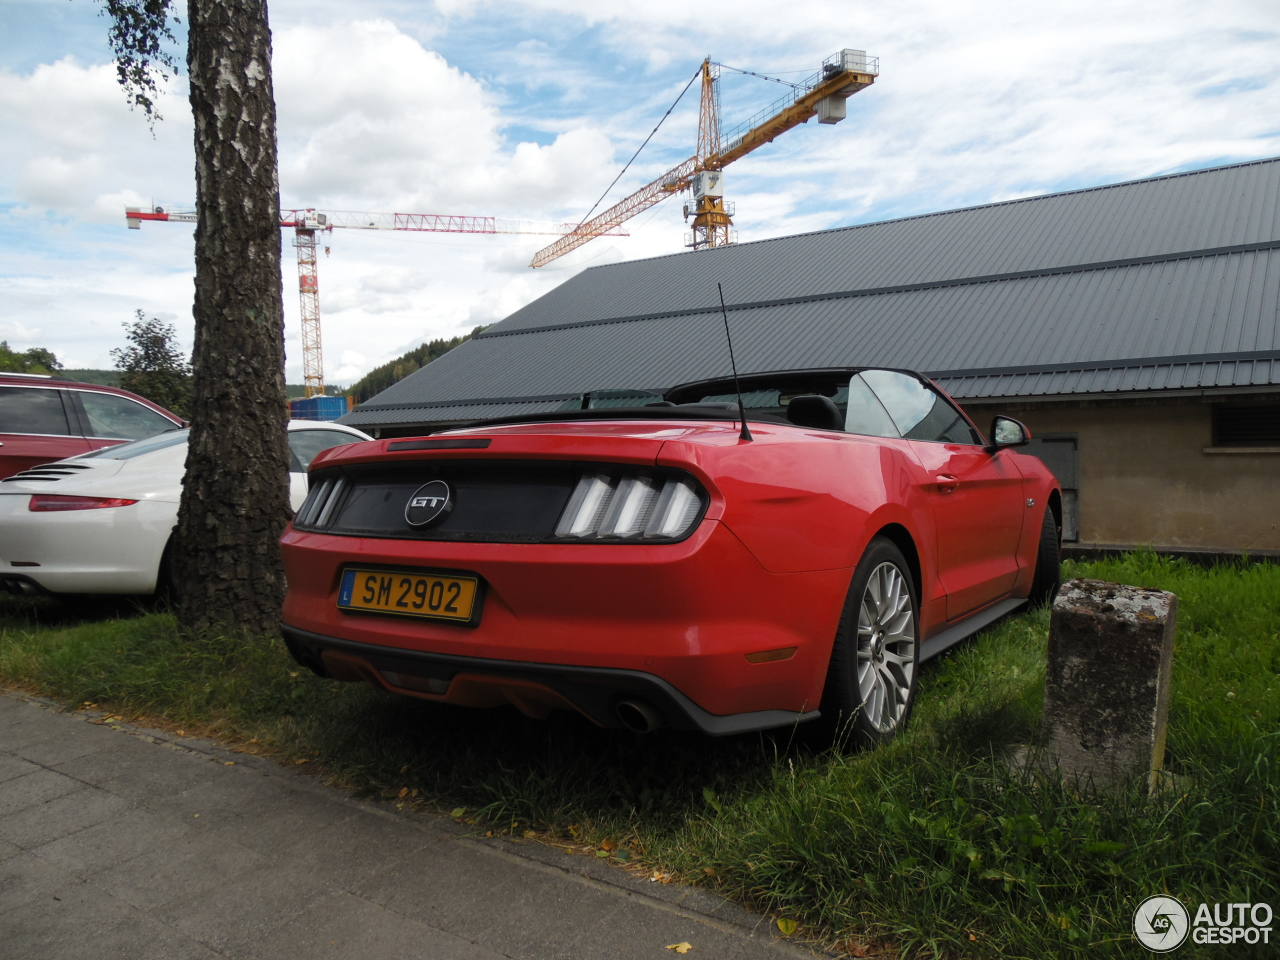 Ford Mustang GT Convertible 2015 - 9 November 2016 ...  Ford Mustang GT...